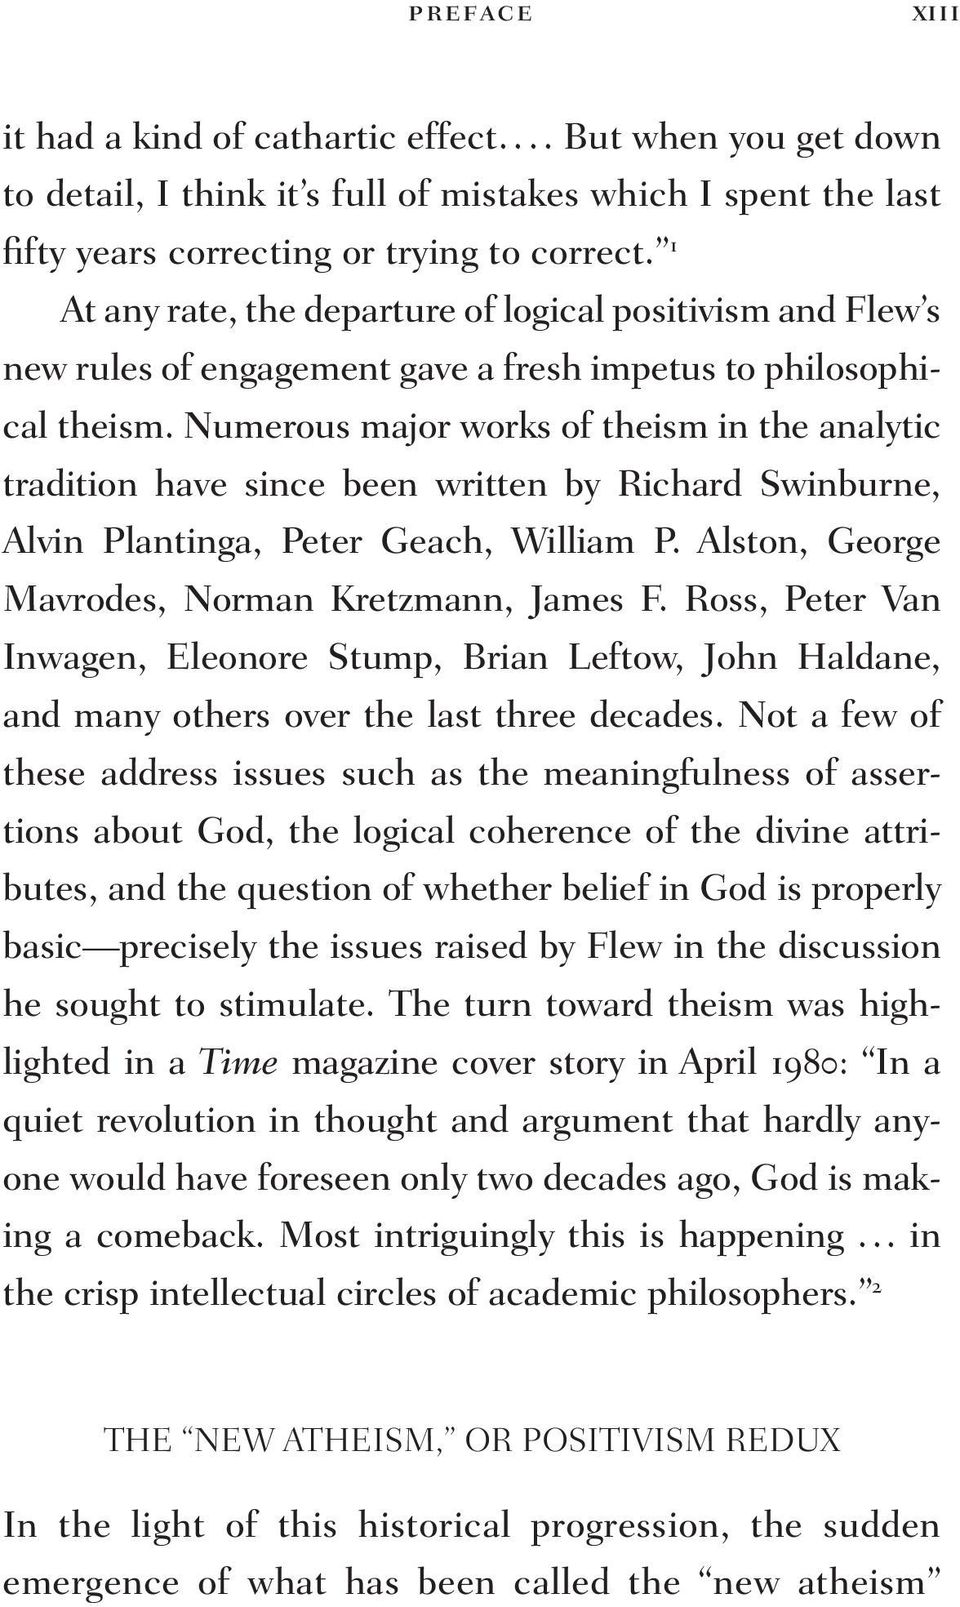 Numerous major works of theism in the analytic tradition have since been written by Richard Swinburne, Alvin Plantinga, Peter Geach, William P. Alston, George Mavrodes, Norman Kretzmann, James F.